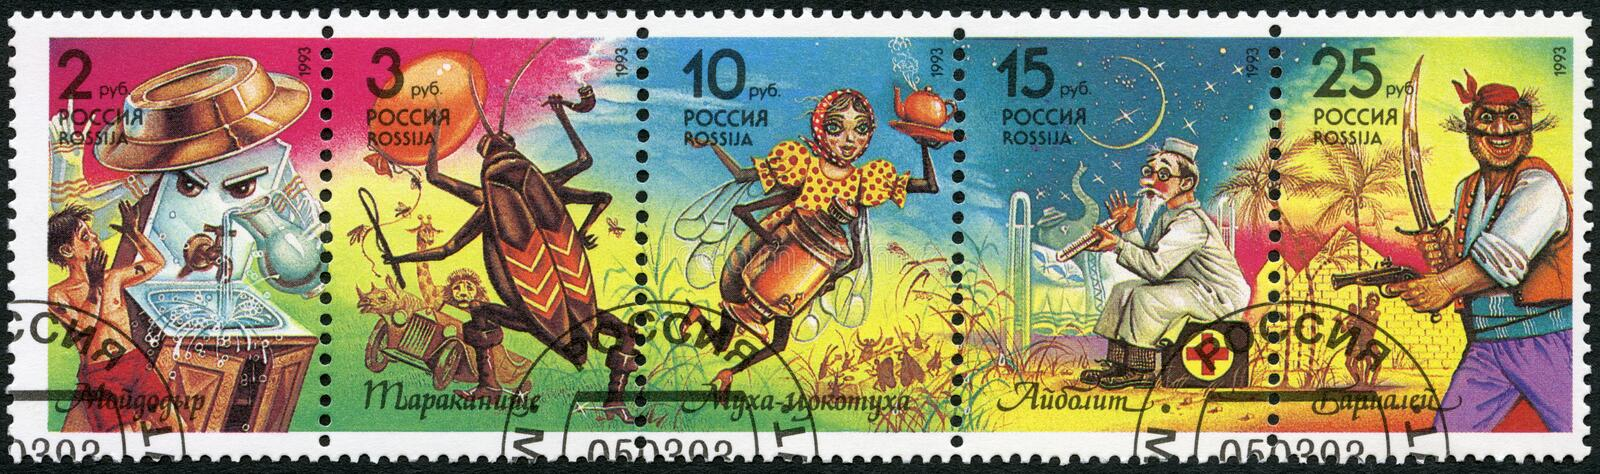 RUSSIA - 1993: shows series Characters from books by K.I.Chukovsky. RUSSIA - CIRCA 1993: A stamp printed in Russia shows series Characters from books by K.I royalty free stock images